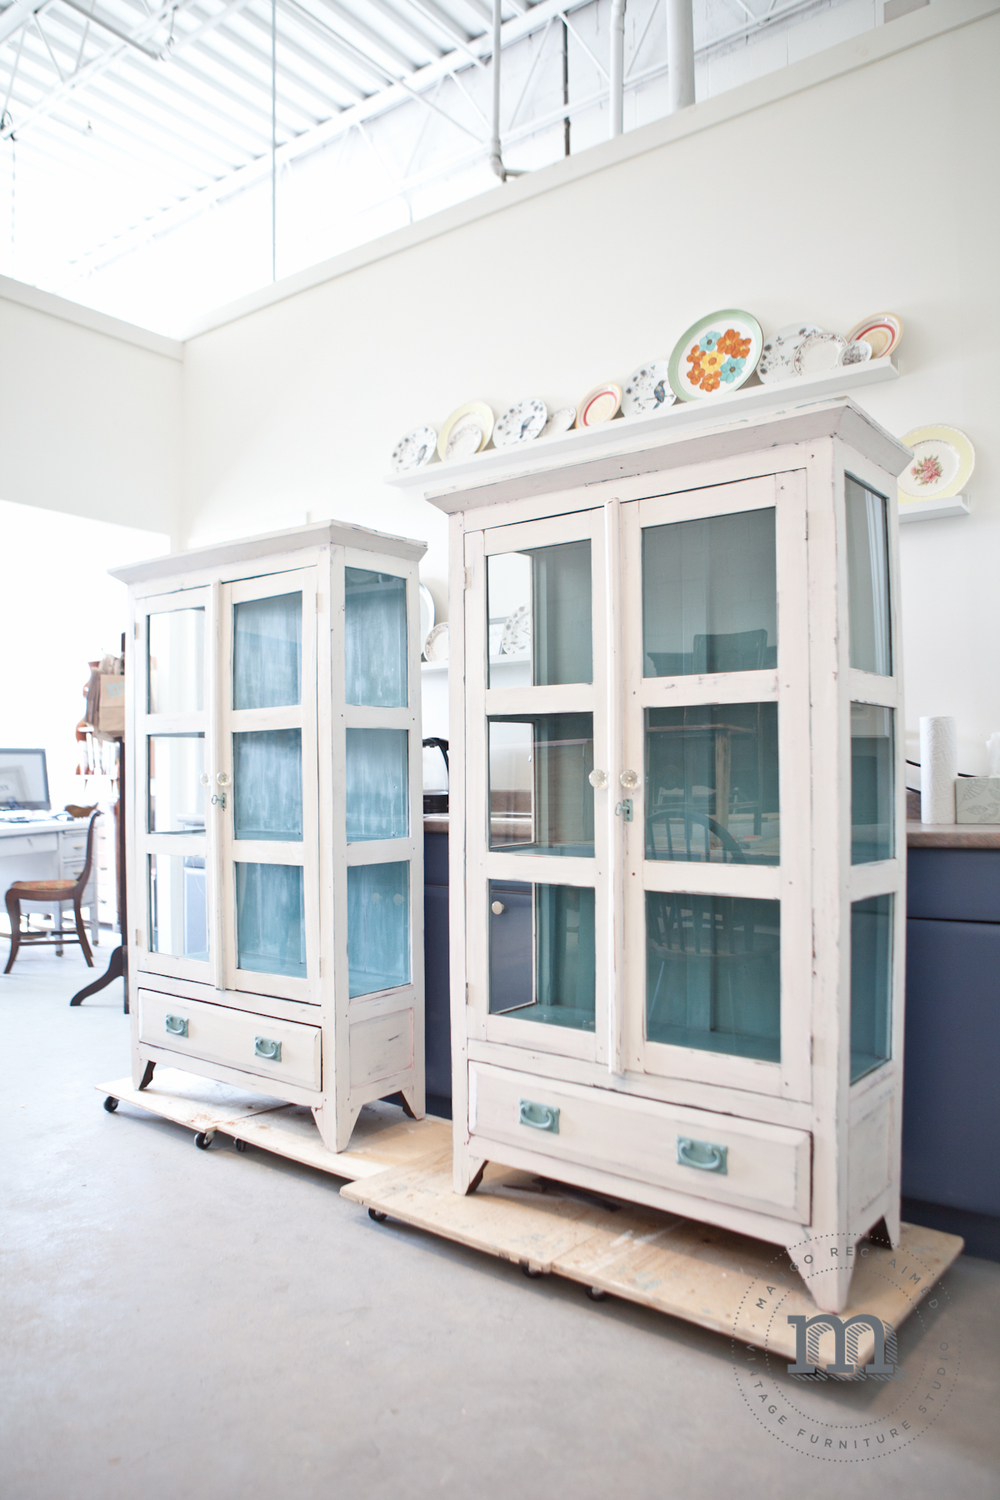 van Gogh painted glass cabinets. I love the way this paint gives a soft distressed finish.